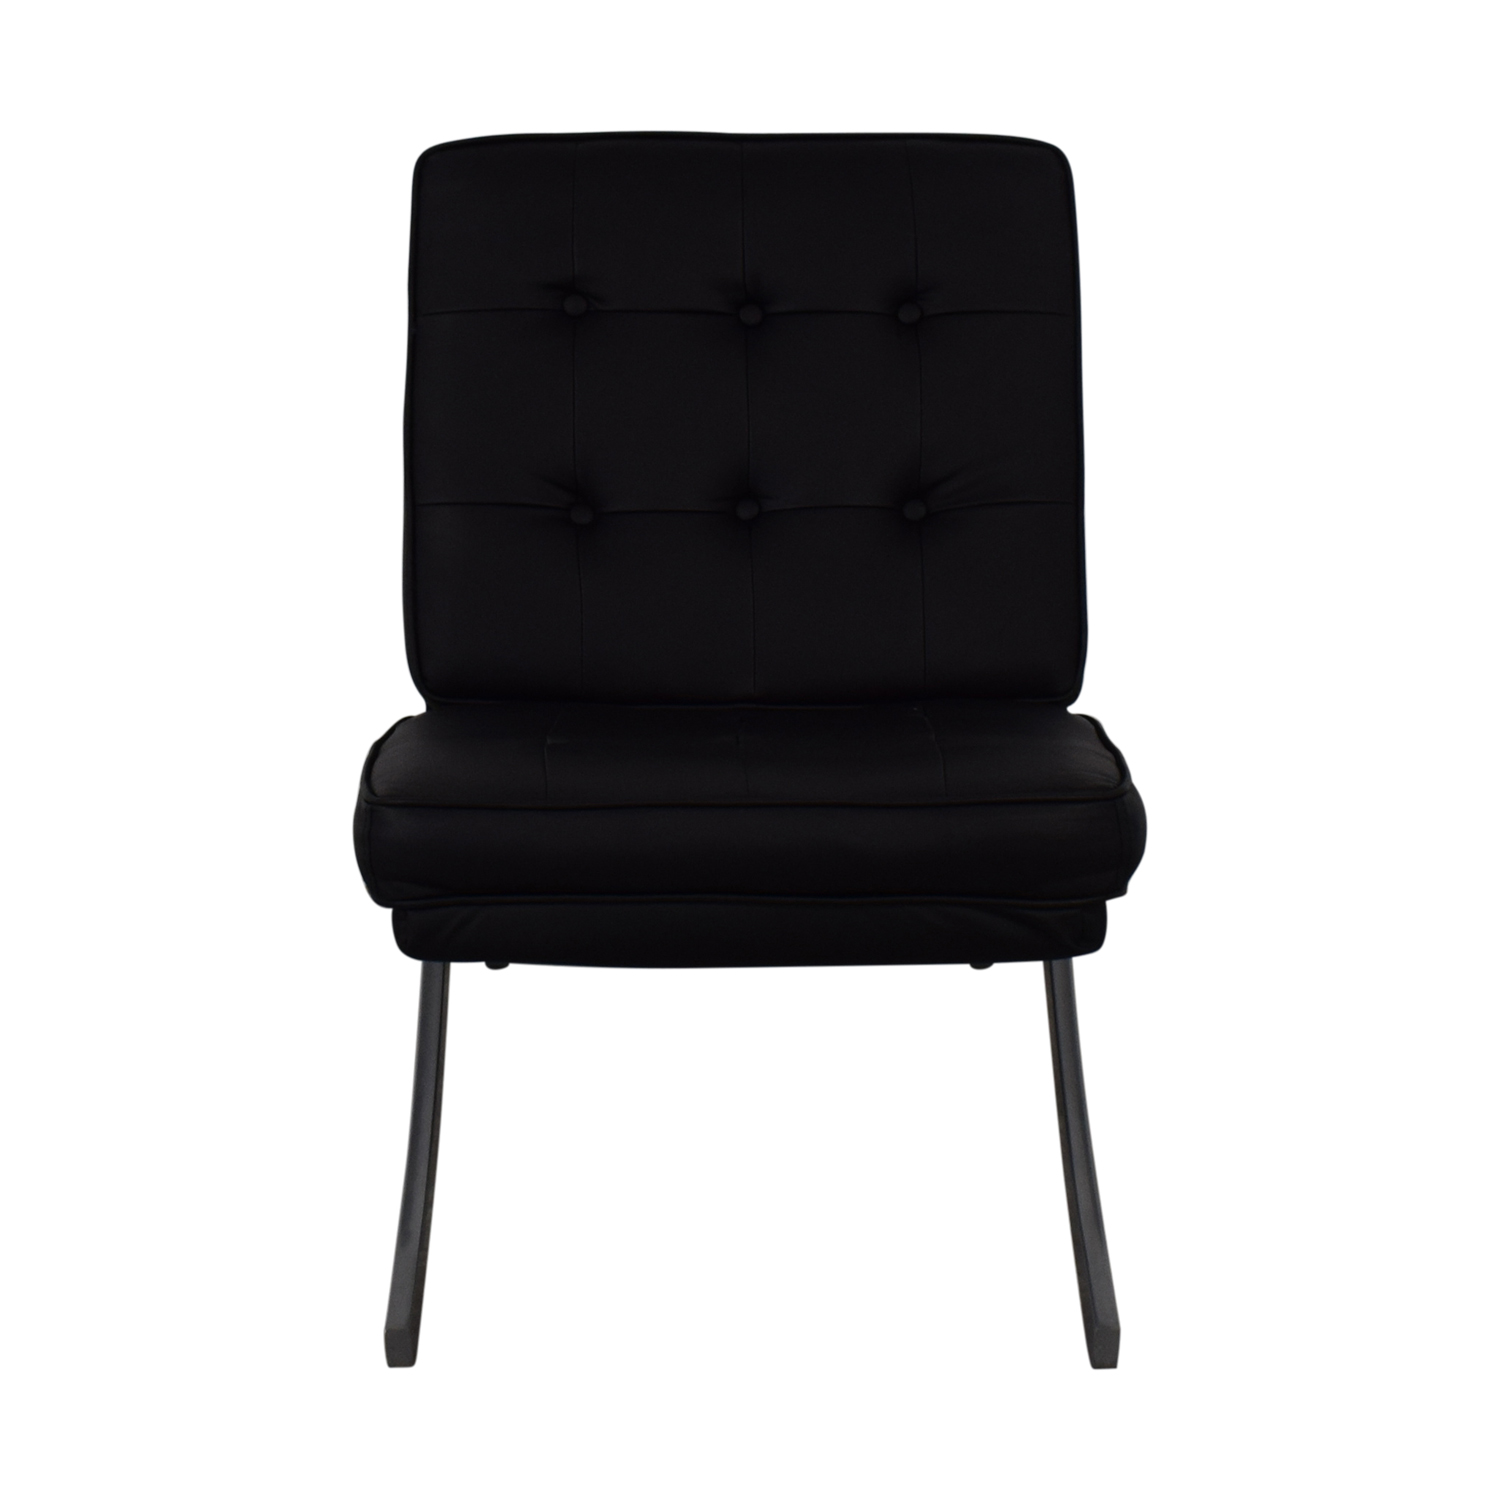 shop Raymour & Flanigan Black Accent Chair Raymour & Flanigan Chairs